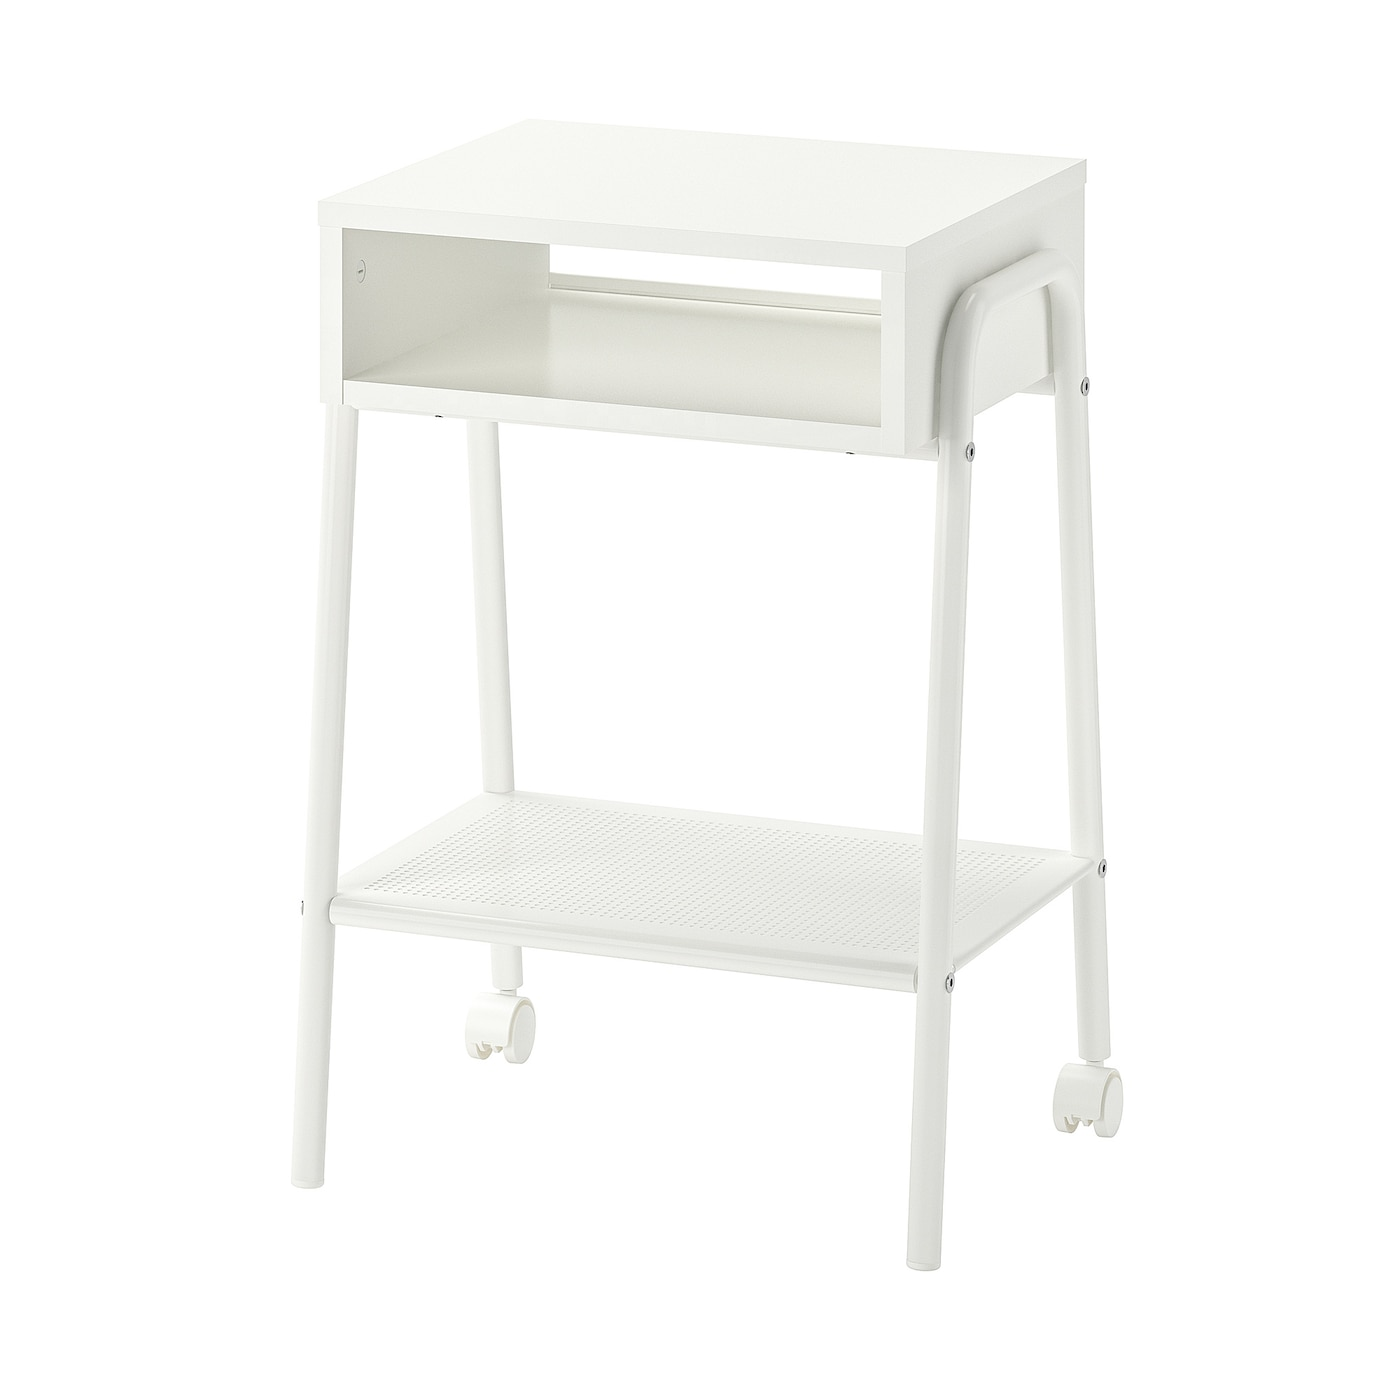 IKEA SETSKOG bedside table Easy to move since the bedside table has castors.